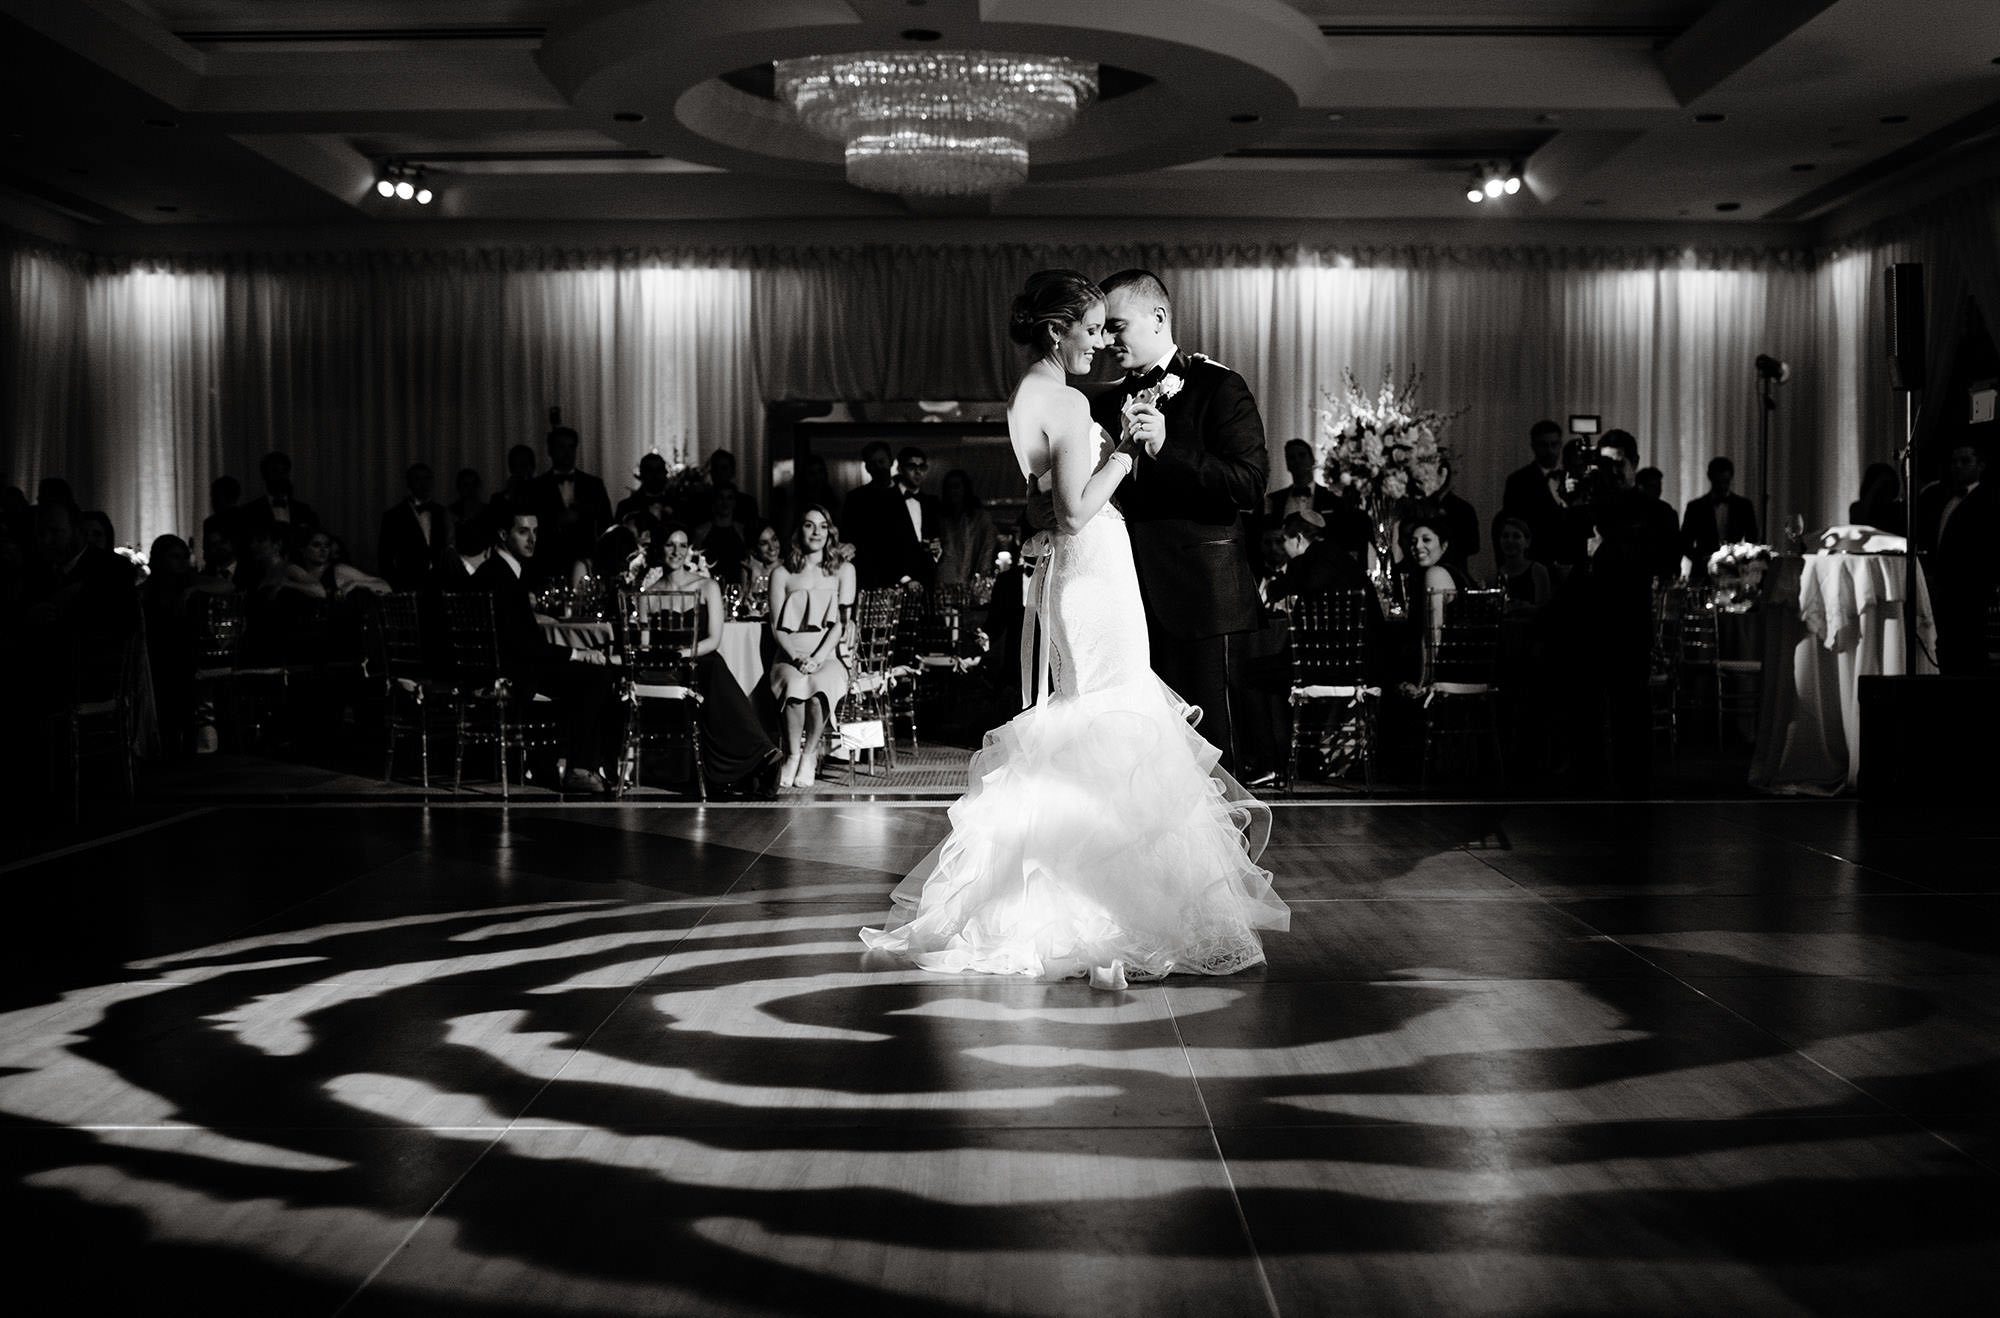 Park Hyatt DC Wedding  I  The bride and groom share their first dance.